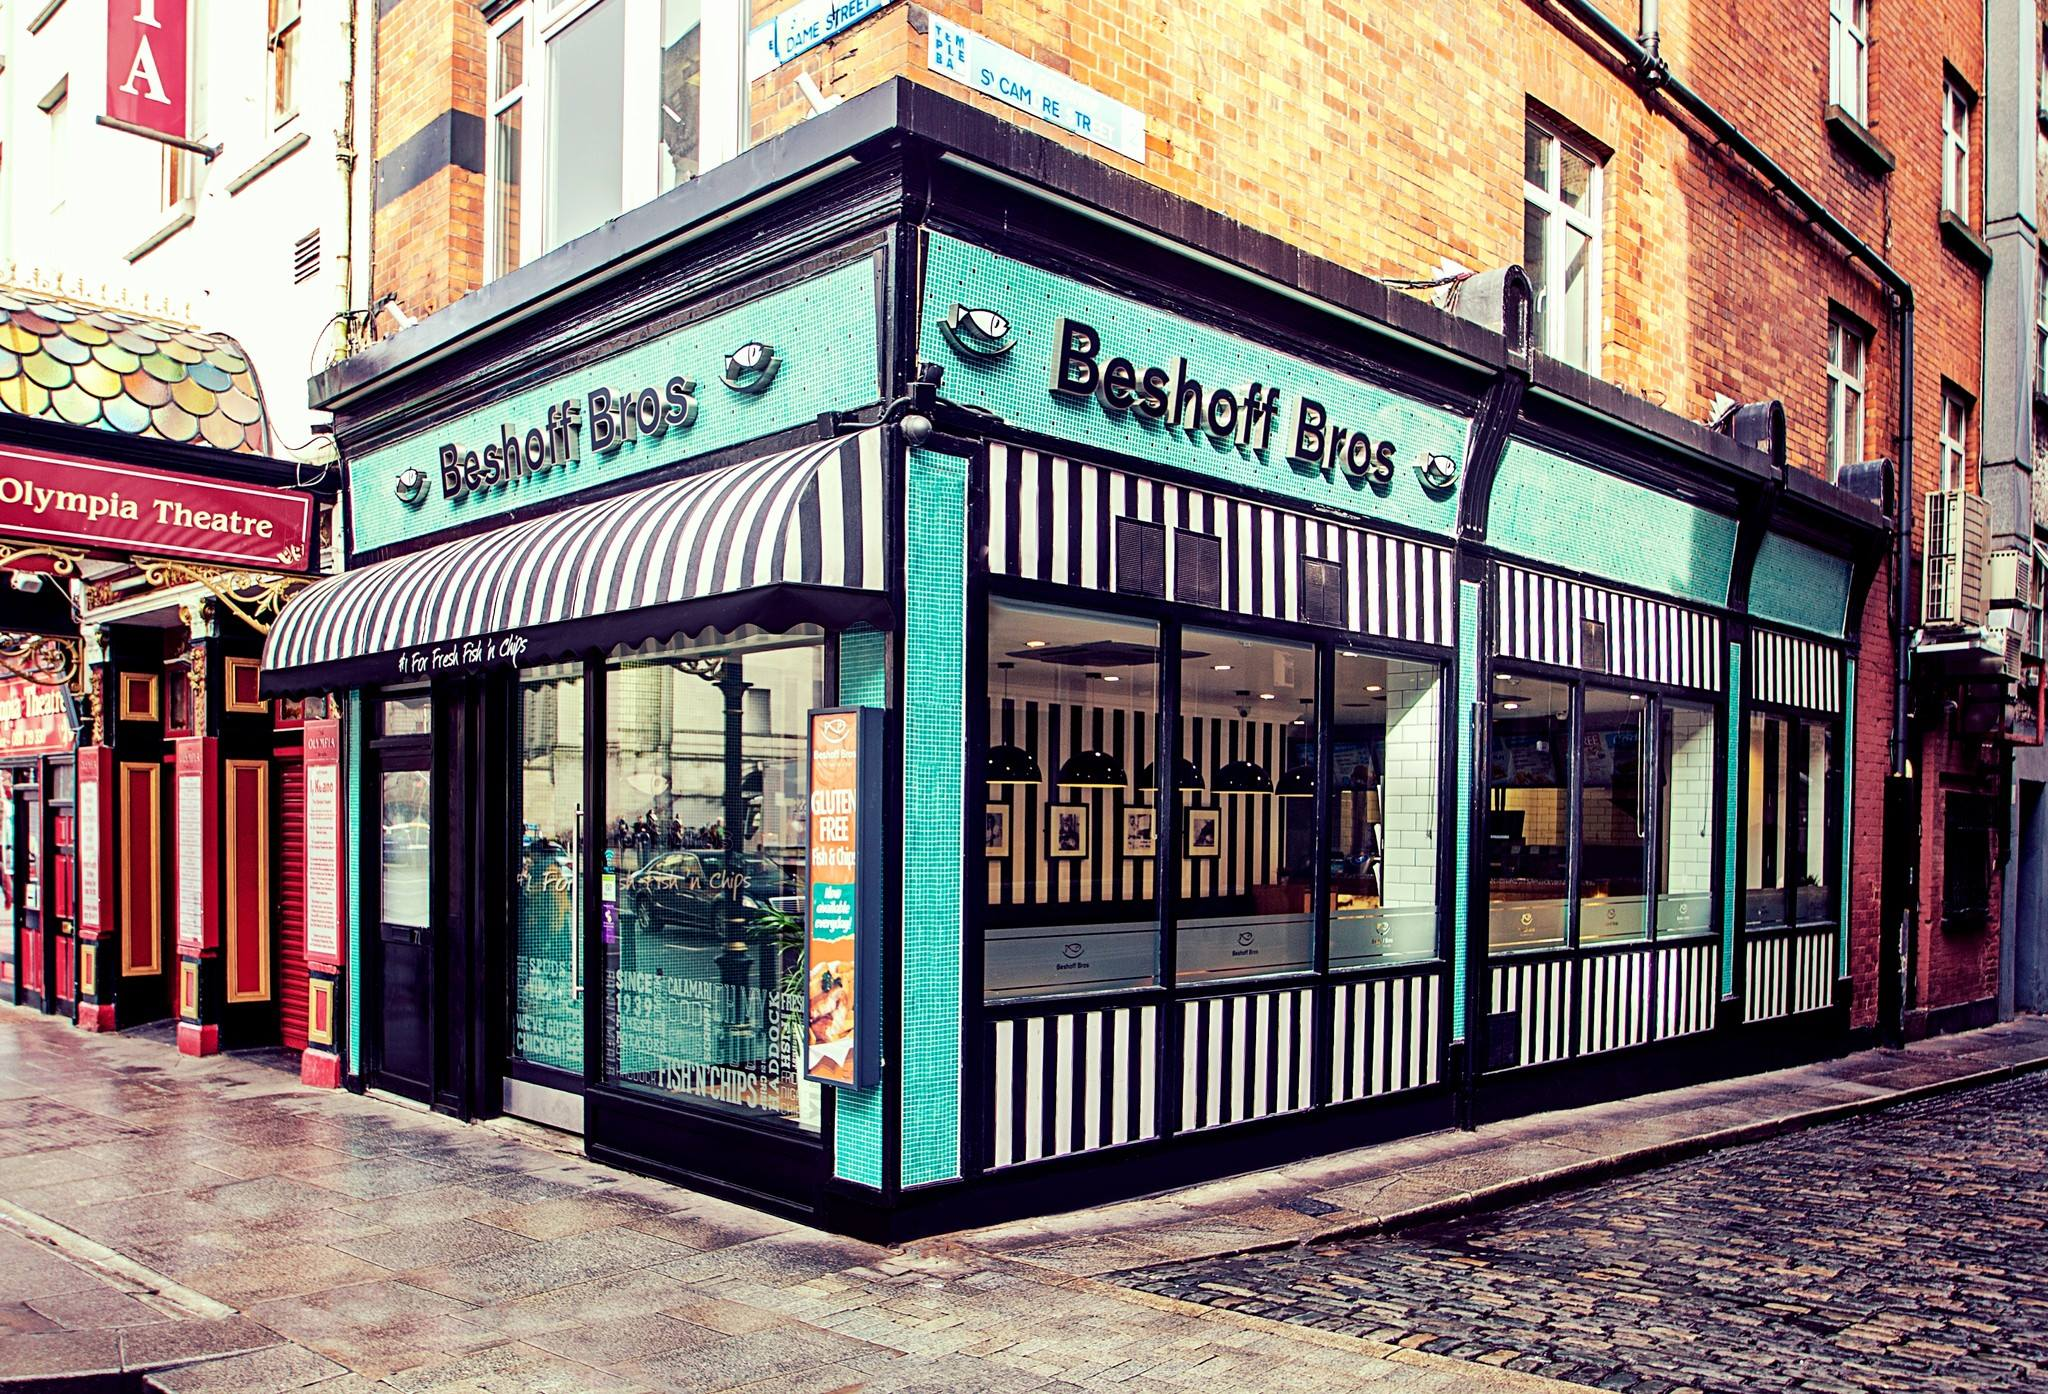 Beshoff Bros is one of the five best places for Fish and Chips in Dublin.